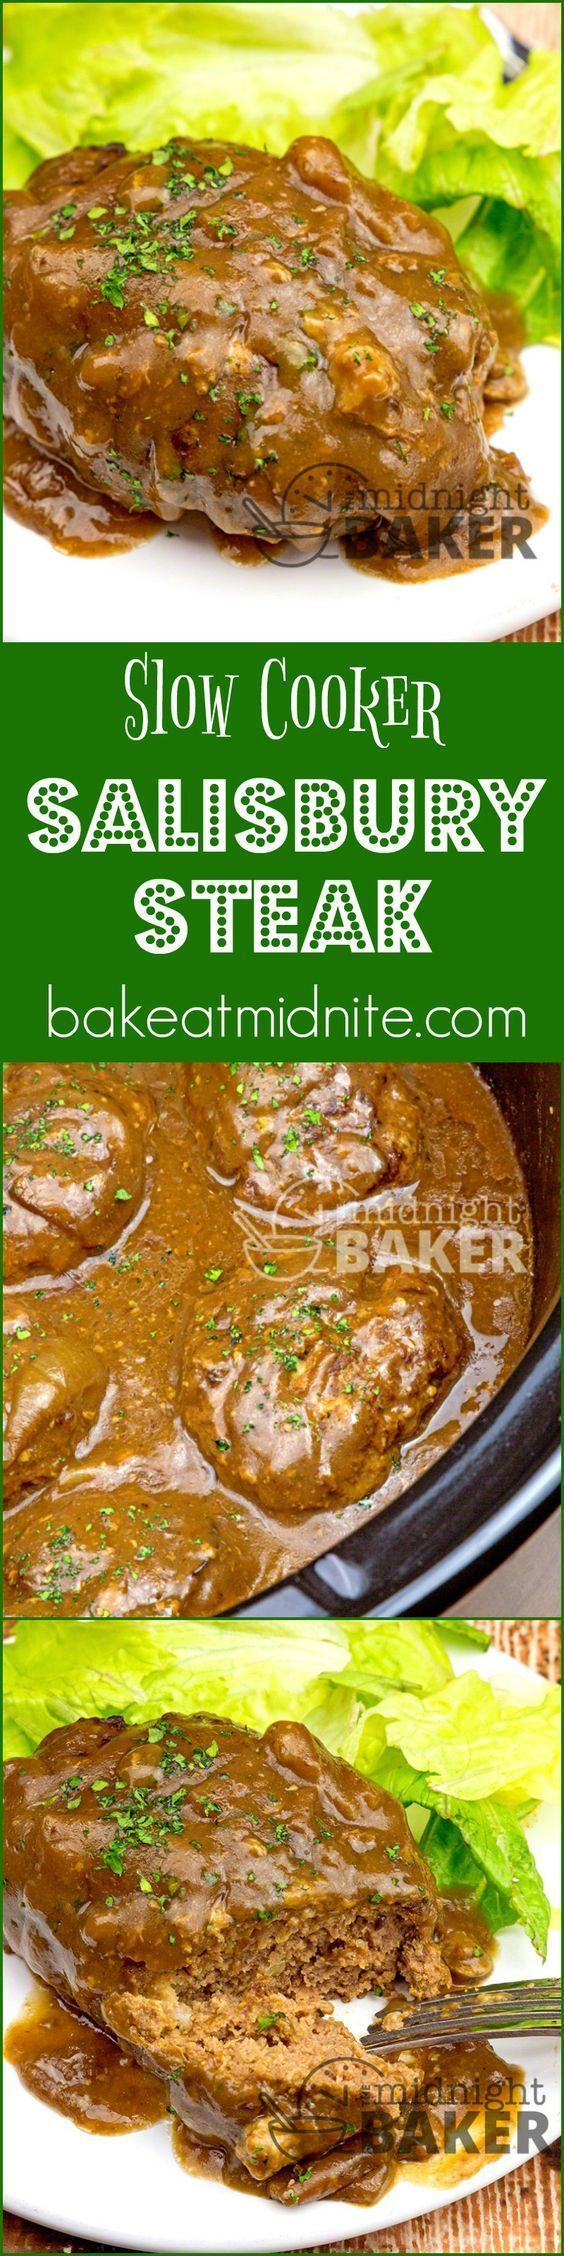 Slow Cooker Salisbury Steak ~ a great American comfort food that cooks low and slow in your crock pot...the family will love this and so will you!